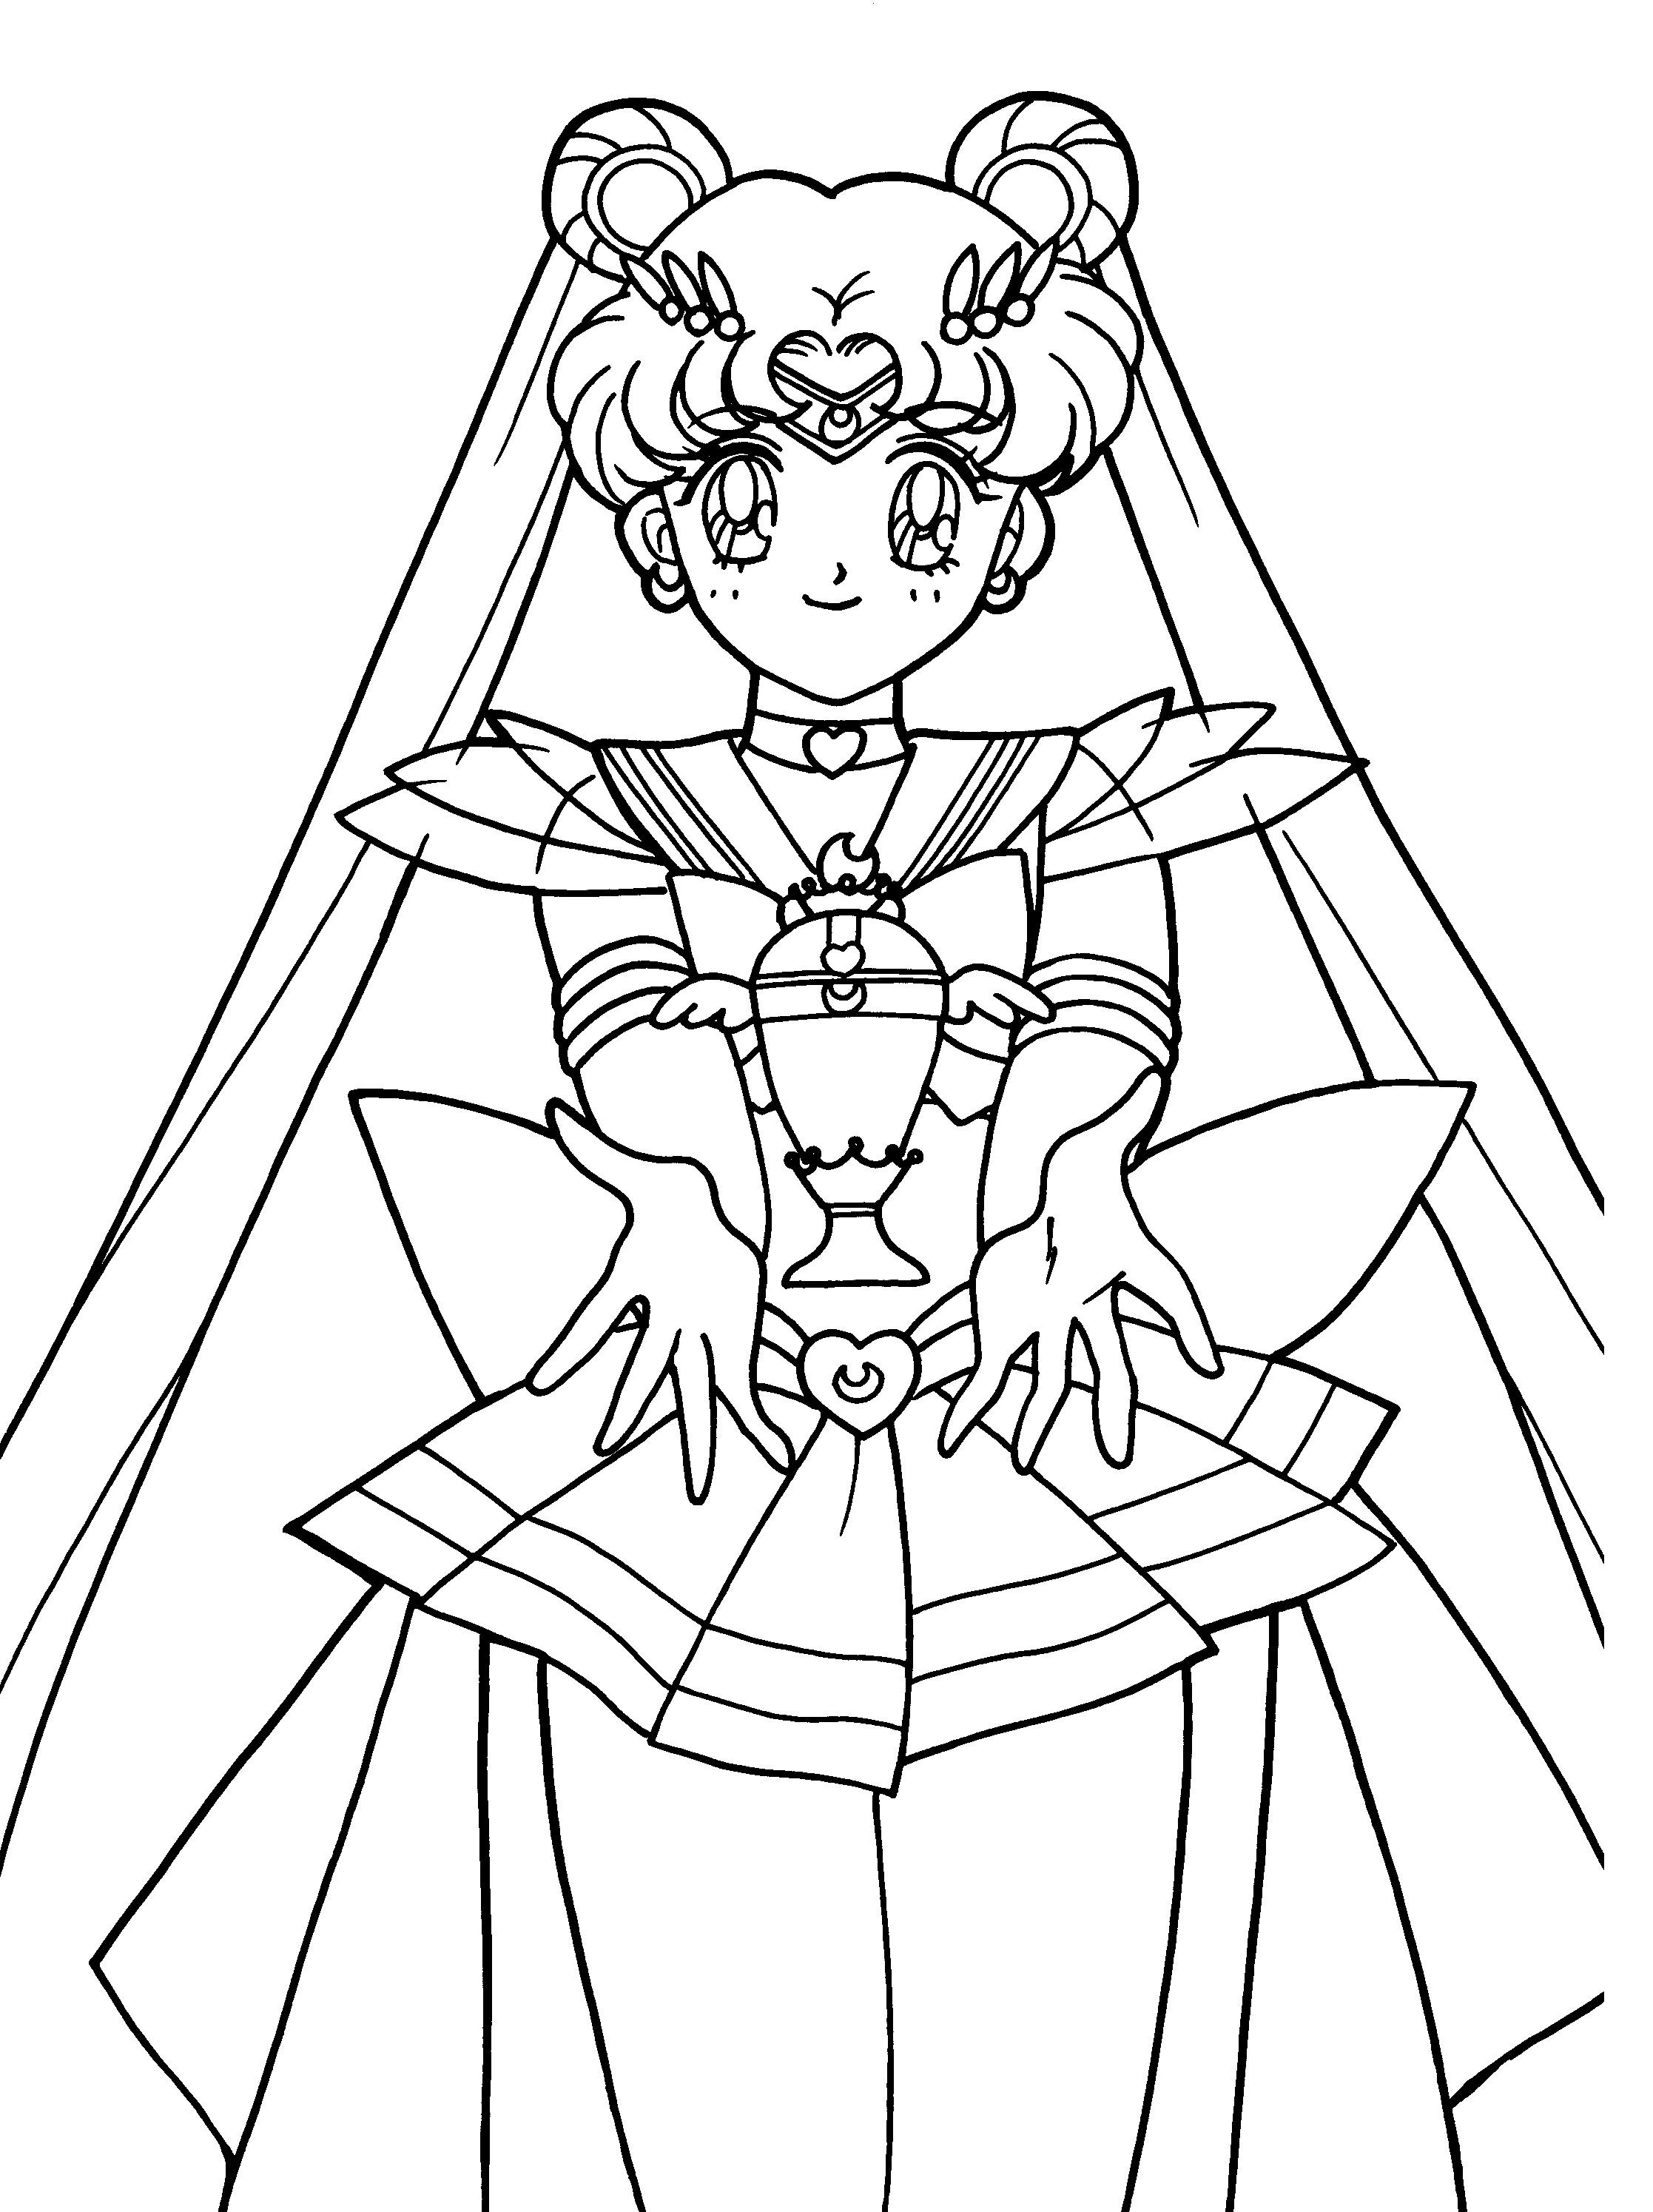 Sailor Moon Show Something Strange Coloring Pages | Sailor Moon ...